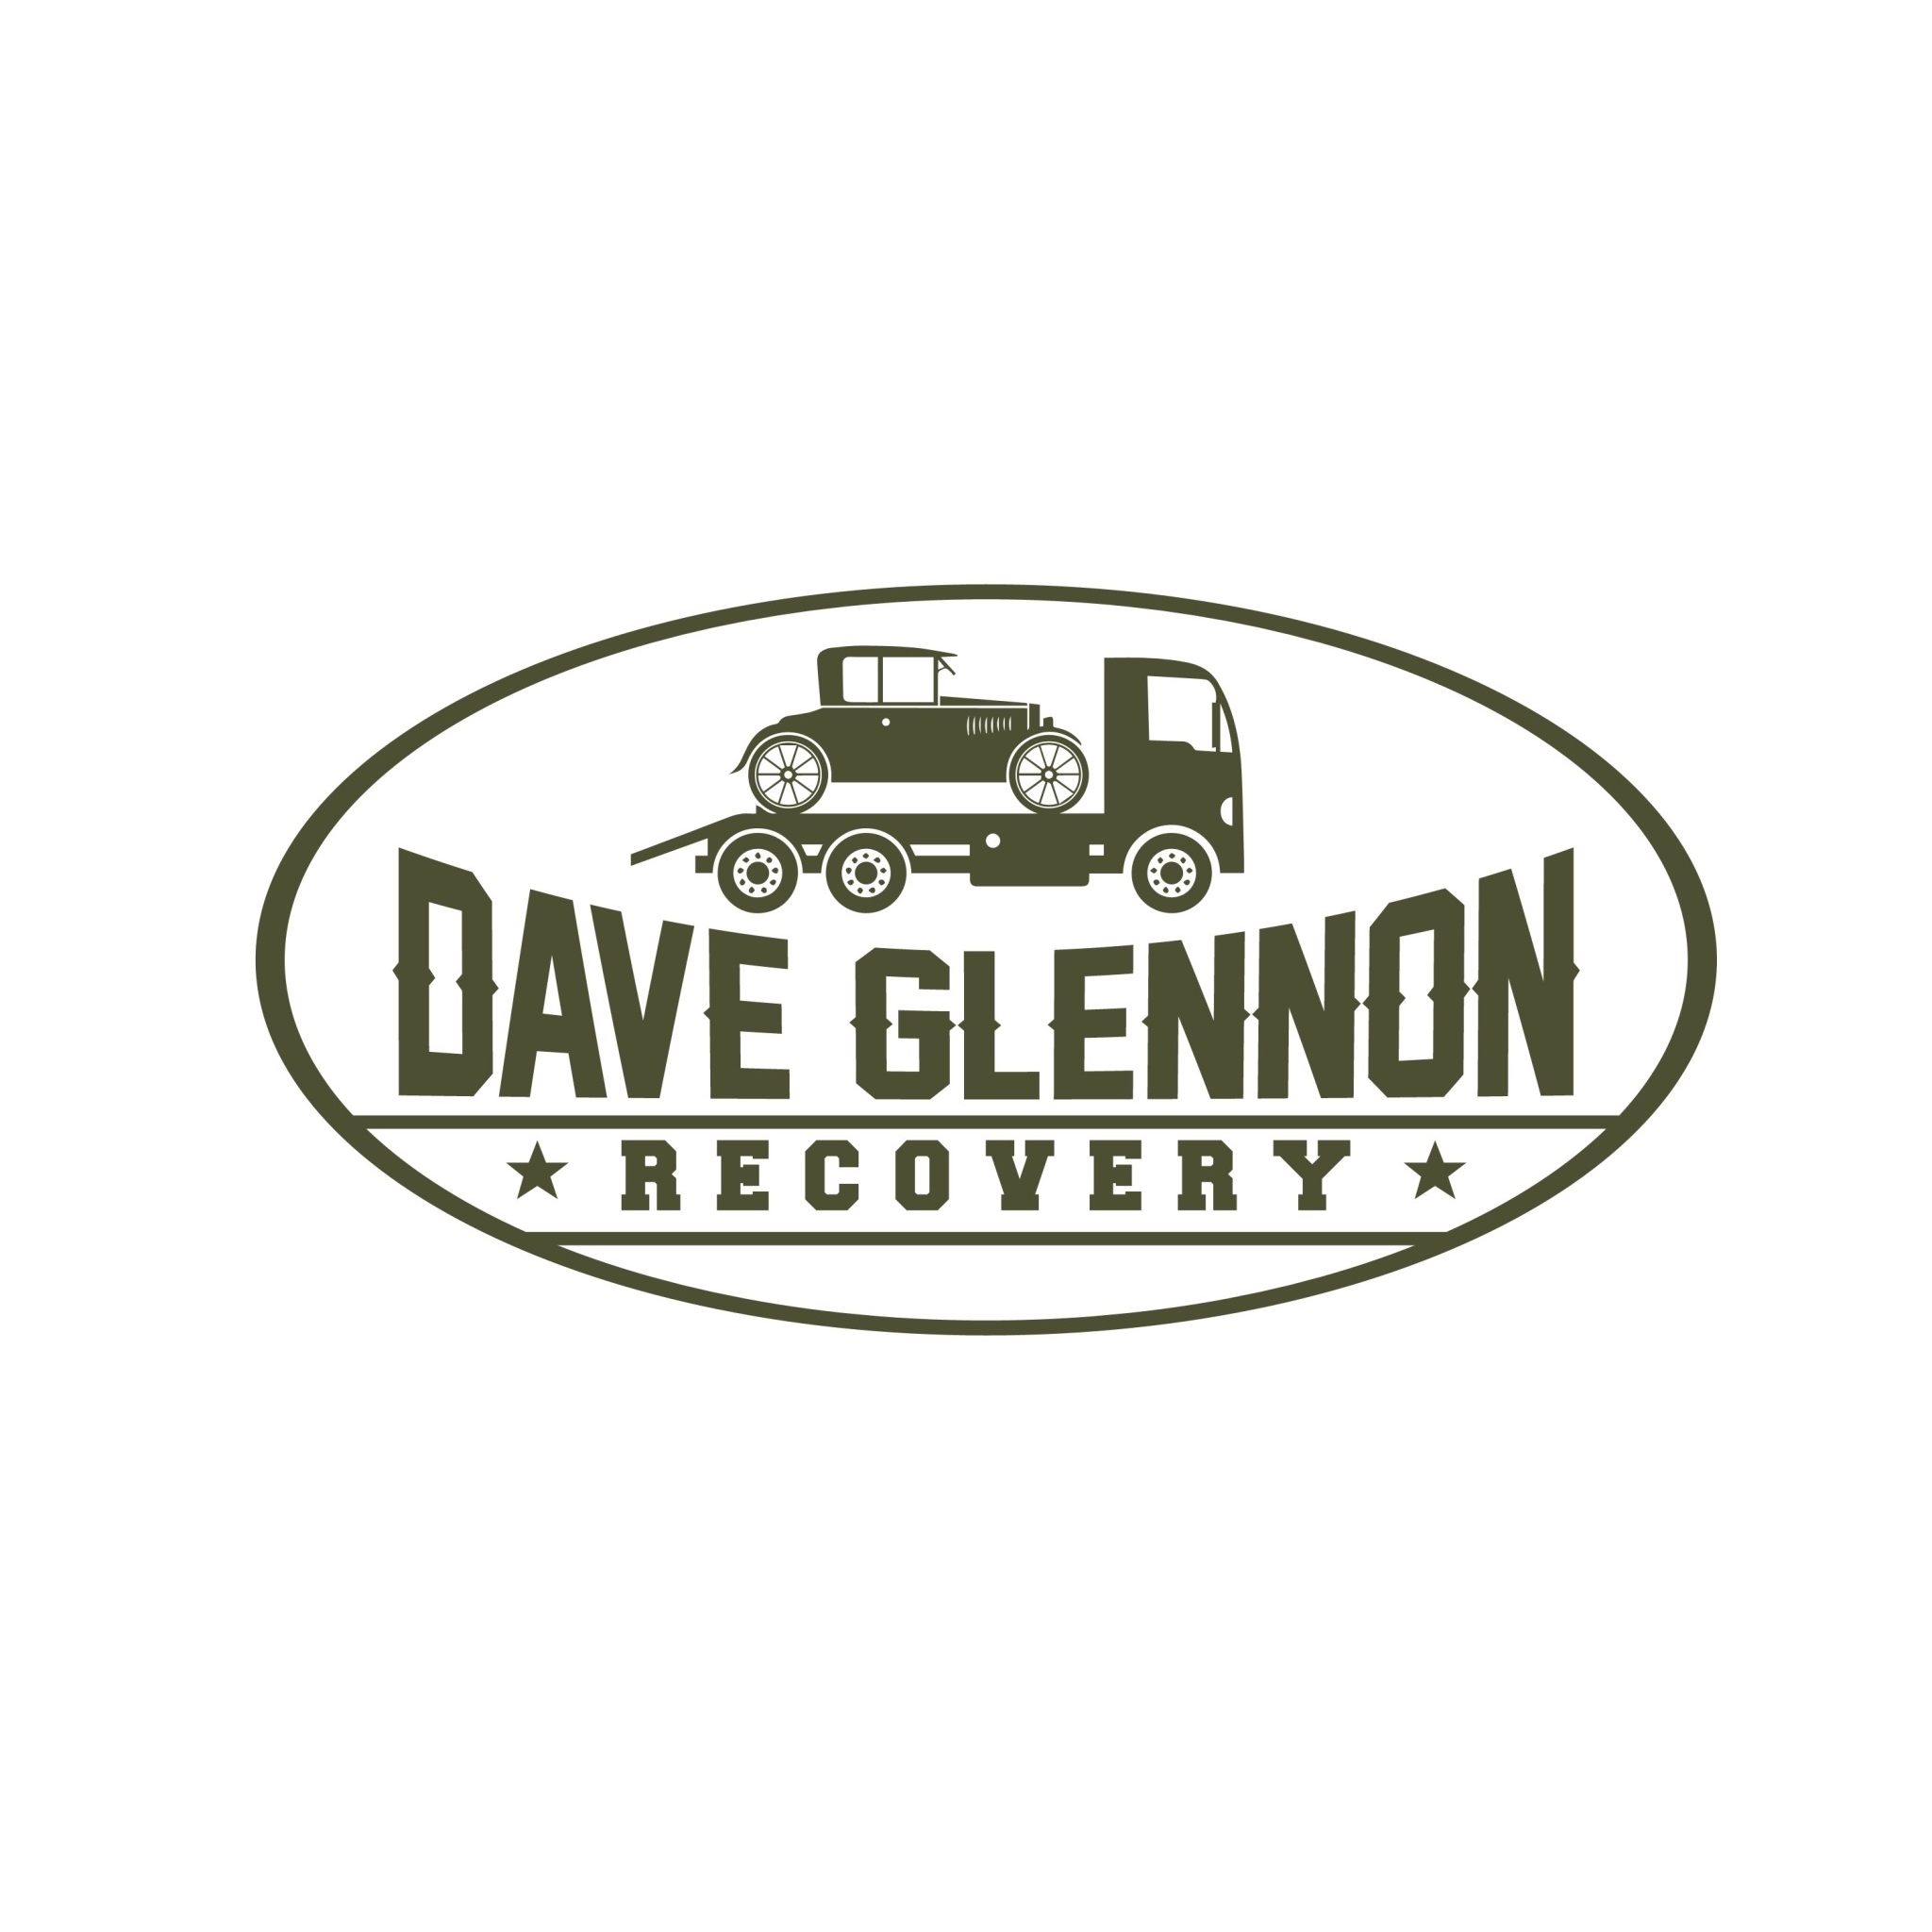 Dave Glennon Recovery